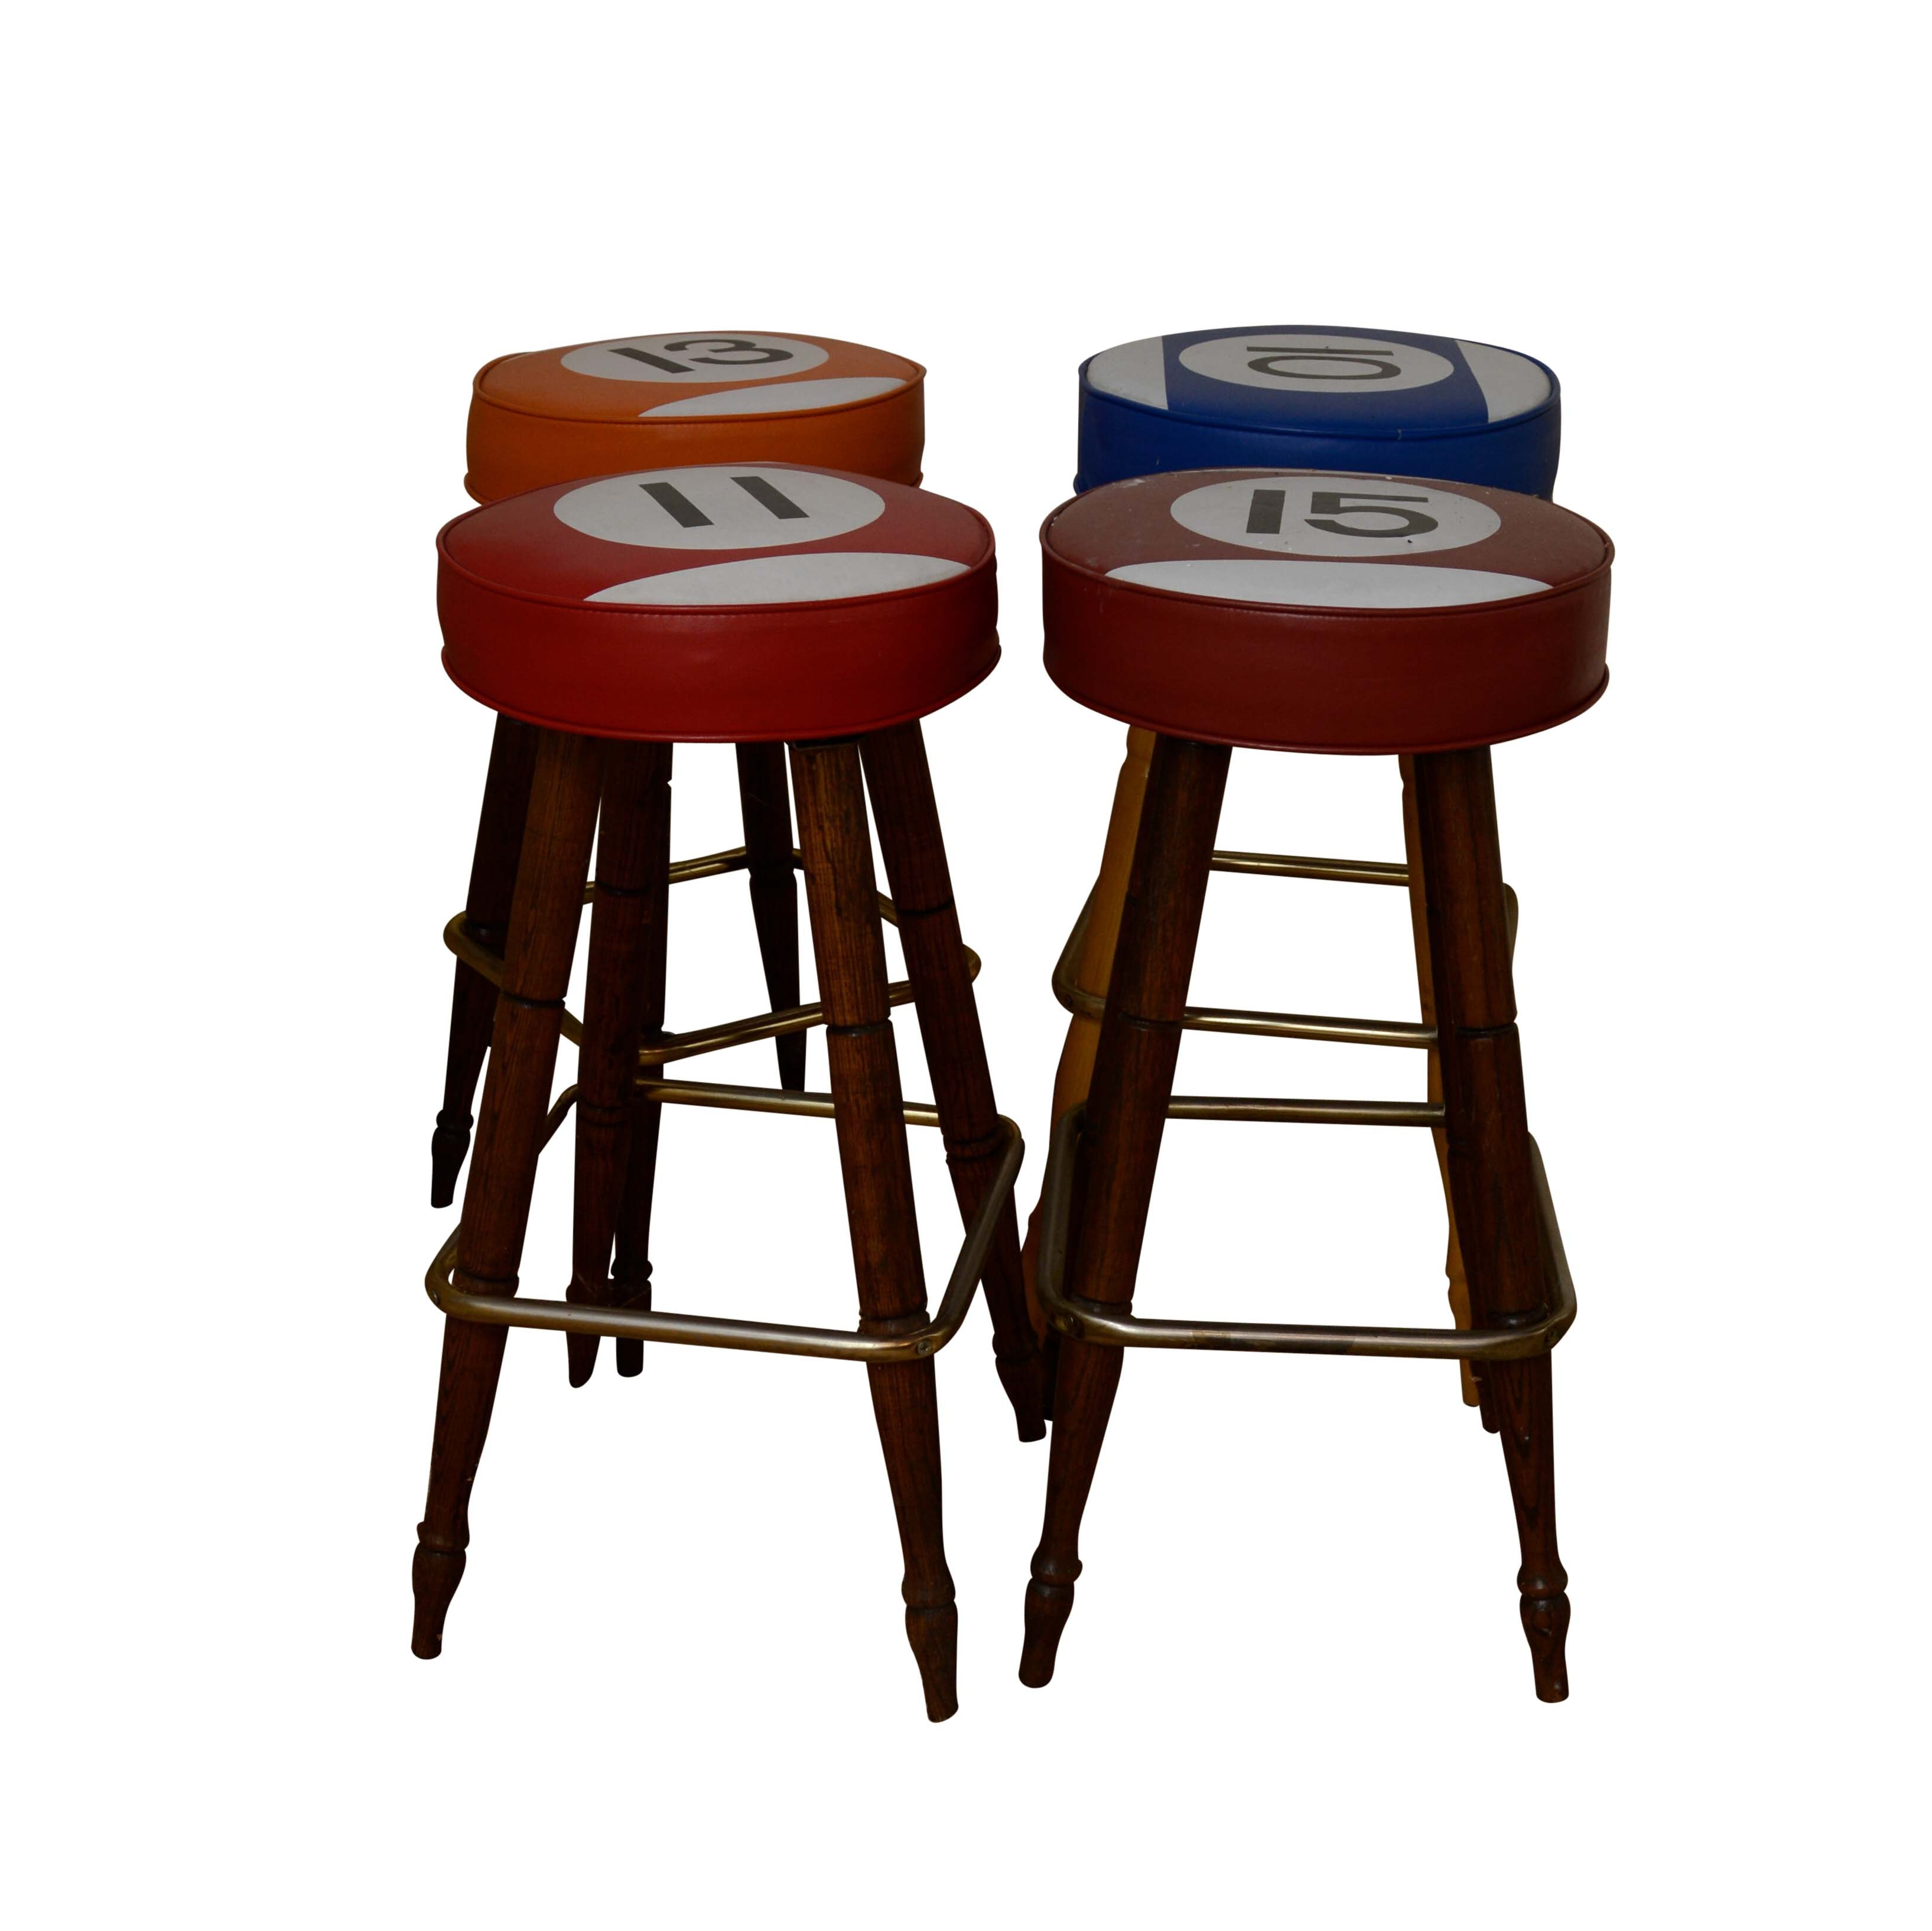 Four Billiard Ball Theme Barstools